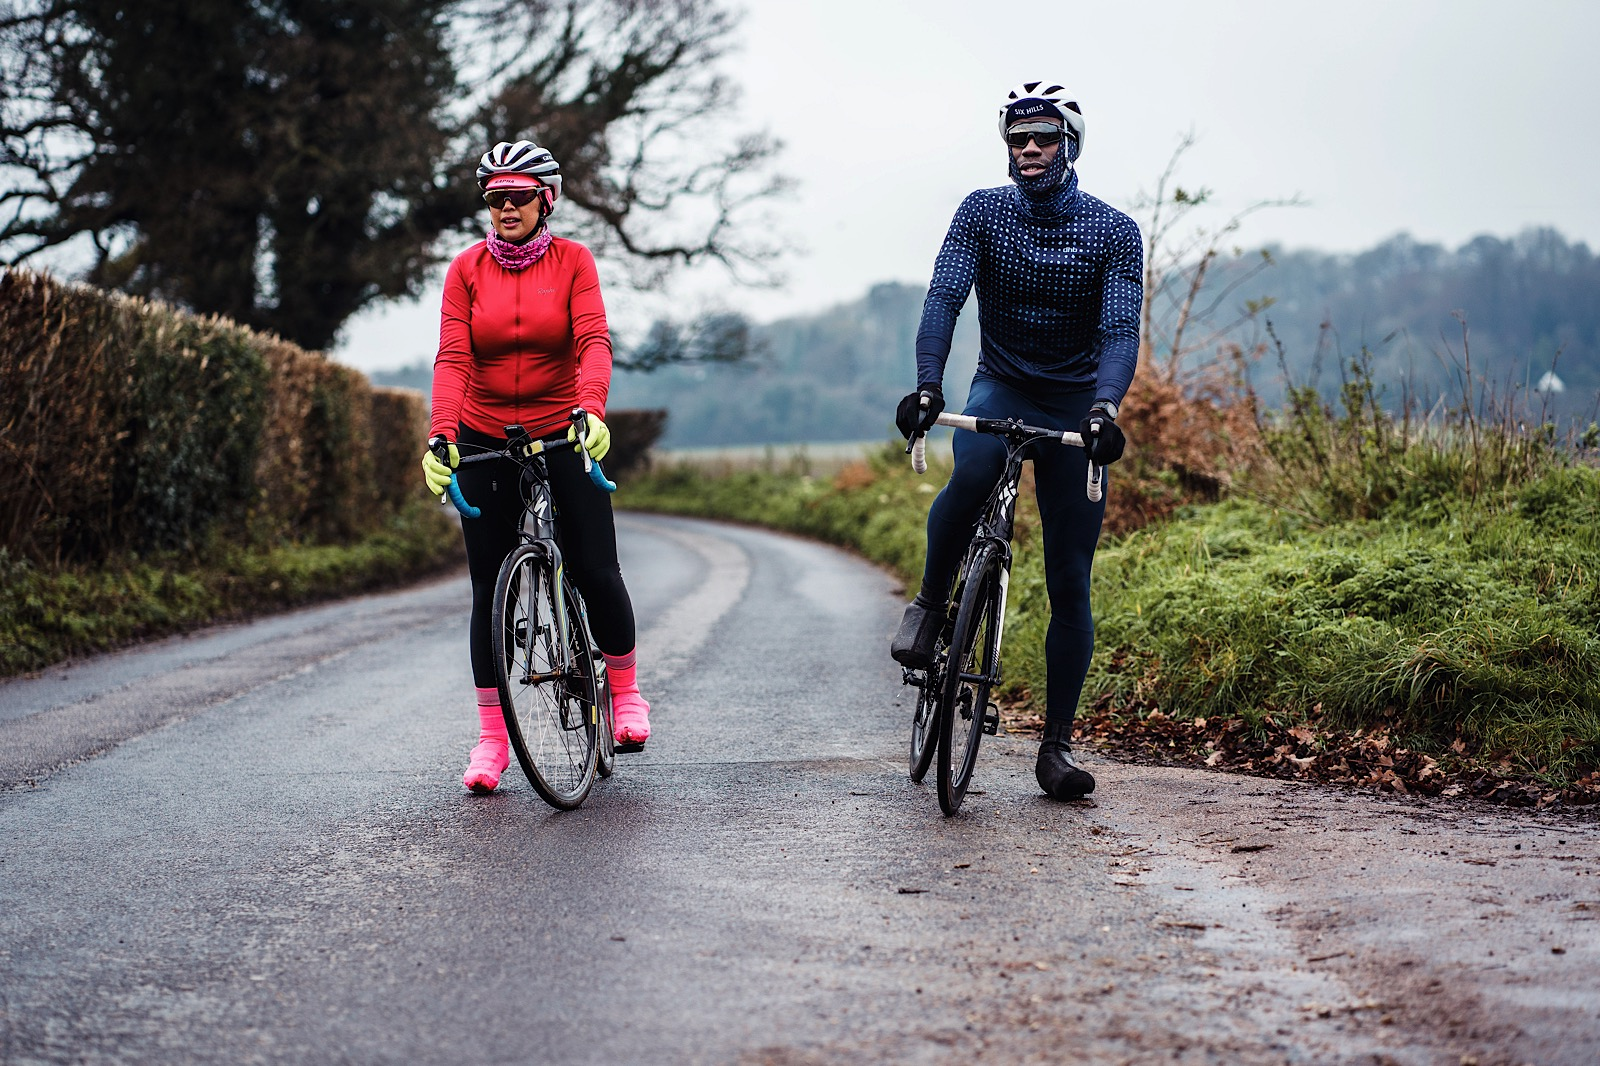 Male and female cyclists on quiet country road for Ride for Unity Charity